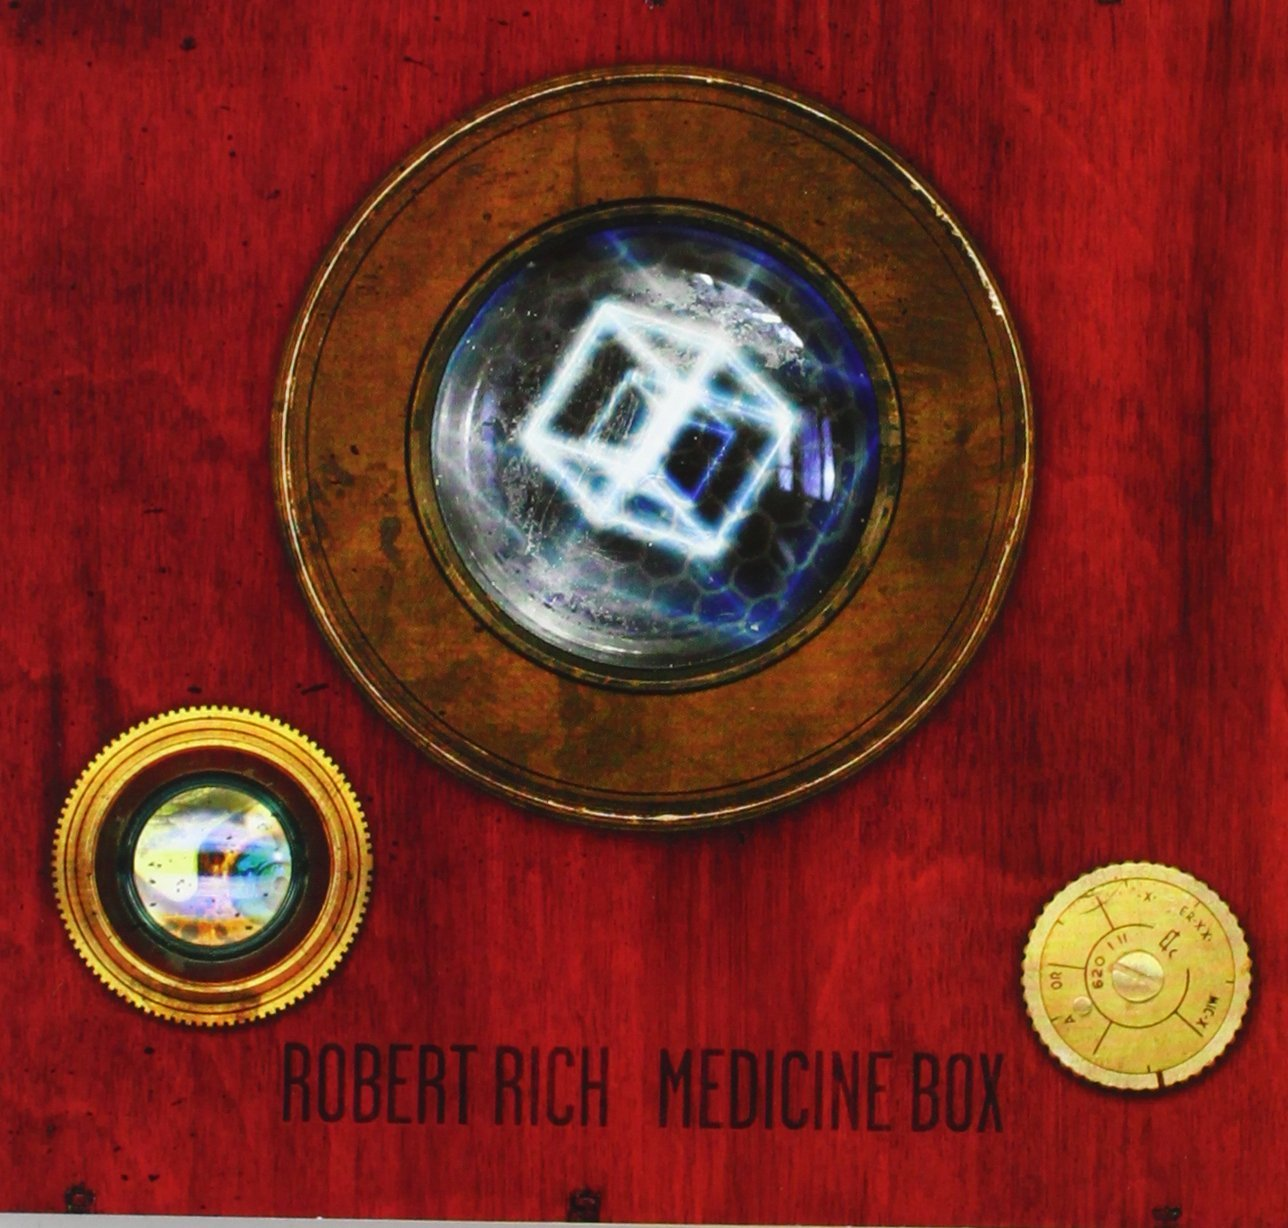 Medicine Box Cover art